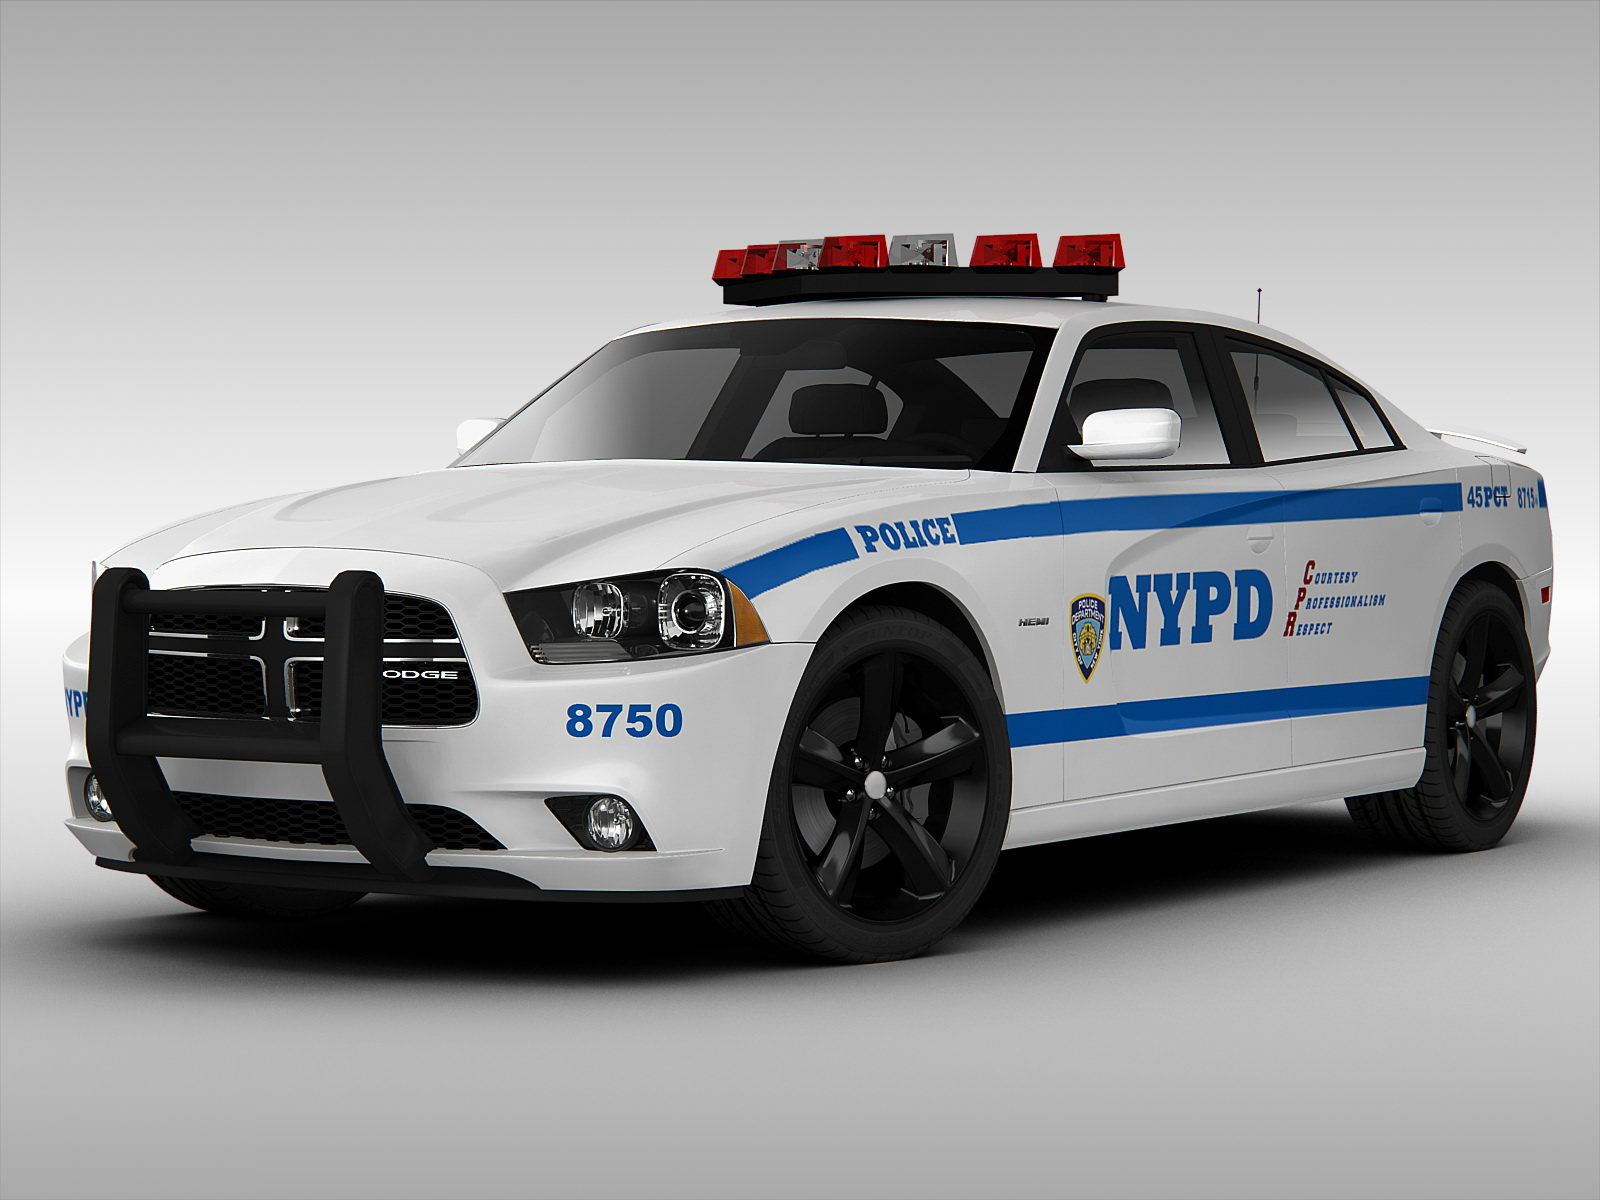 bump mapping with Dodge Charger Nypd Police Car 2013 on Face Mapping additionally 6285936917 furthermore 2 further Gold together with Photorealistic Head Training.